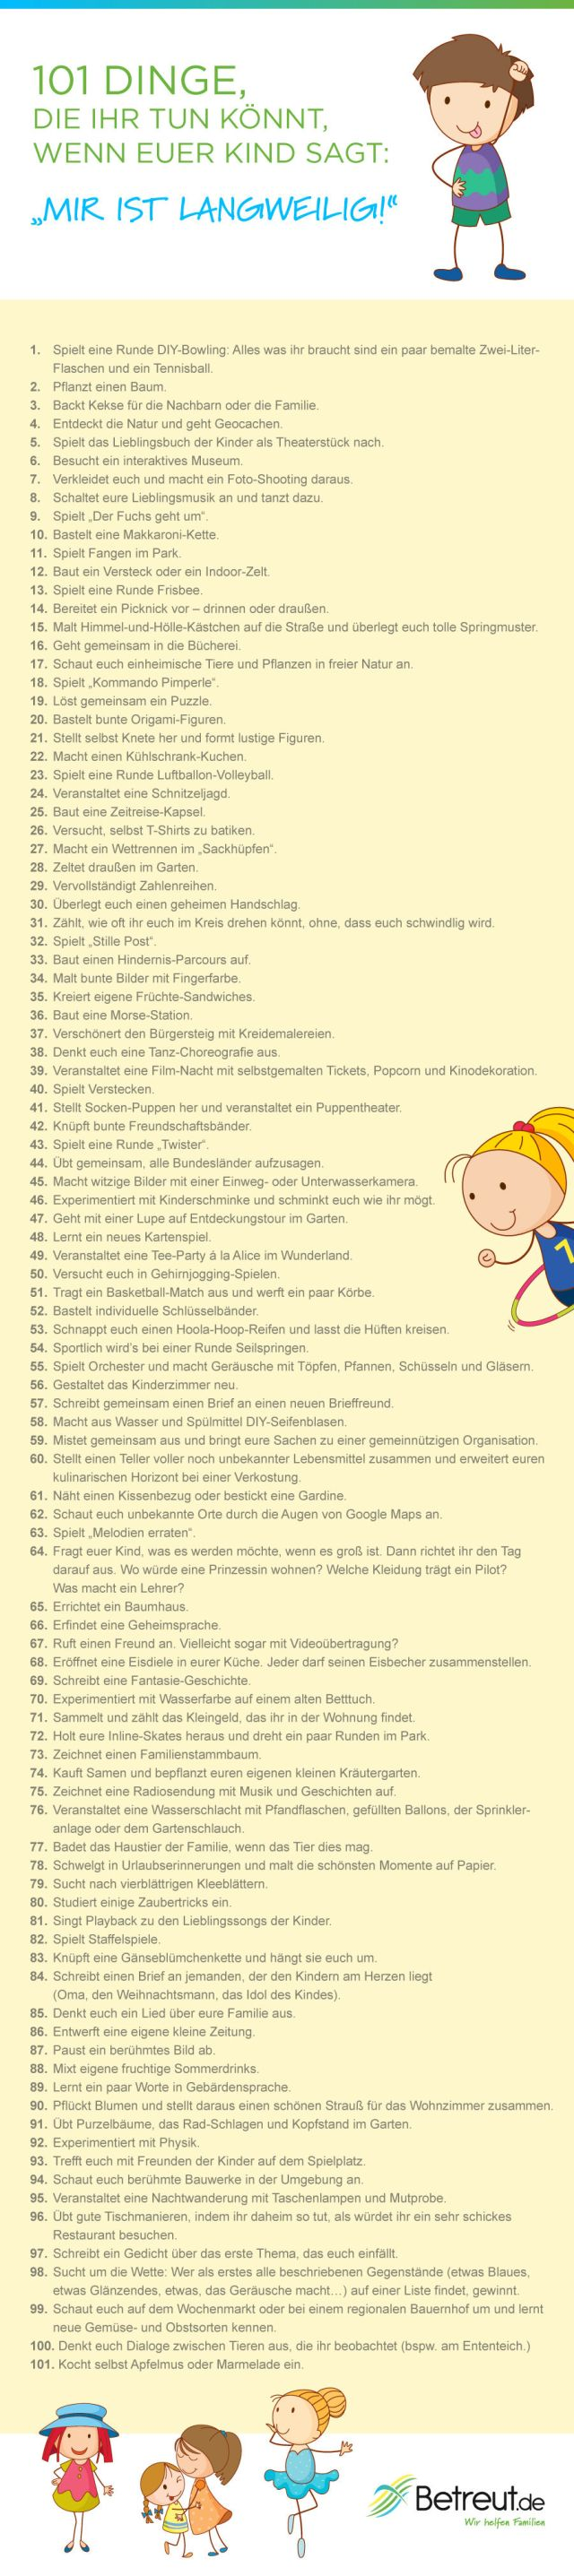 101-things-to-do_DE